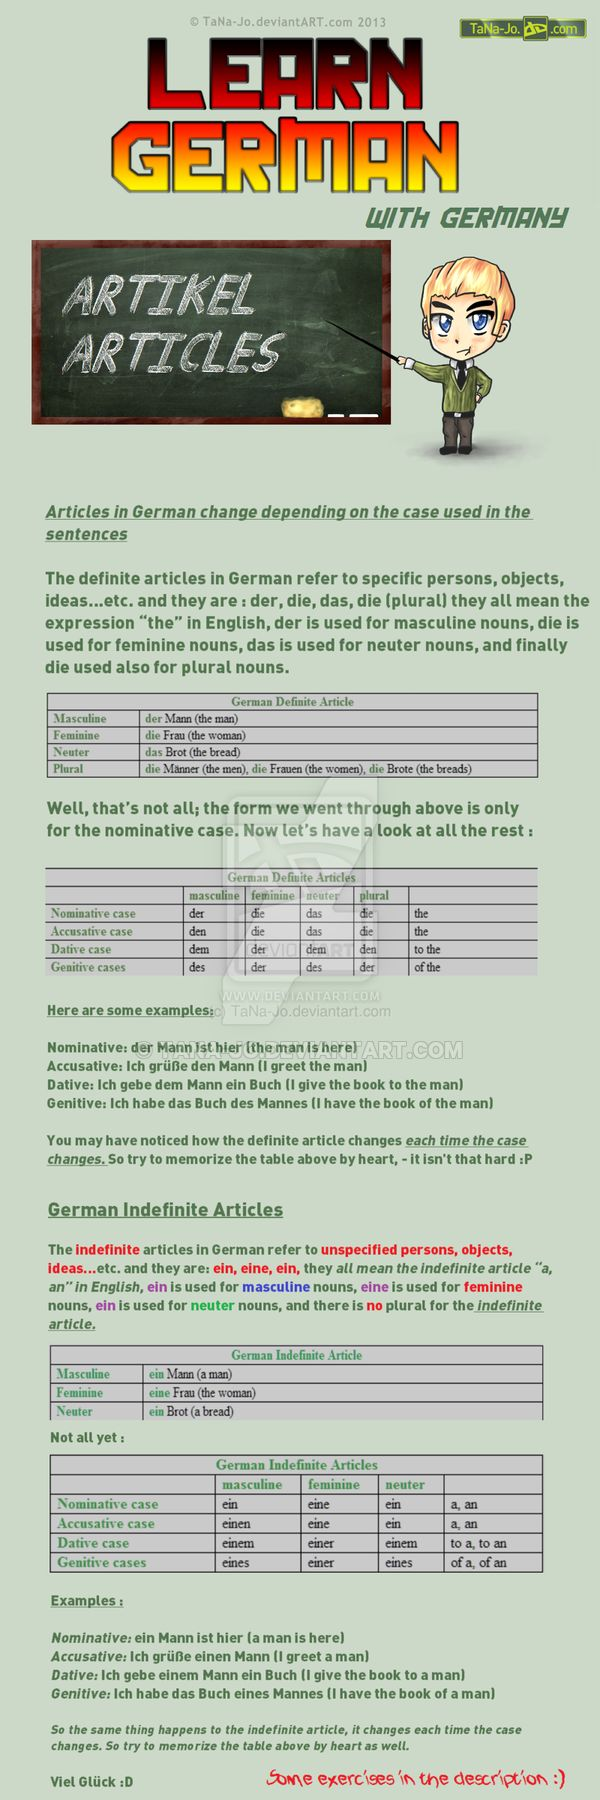 225 best Other that I love images on Pinterest   Languages, German ...